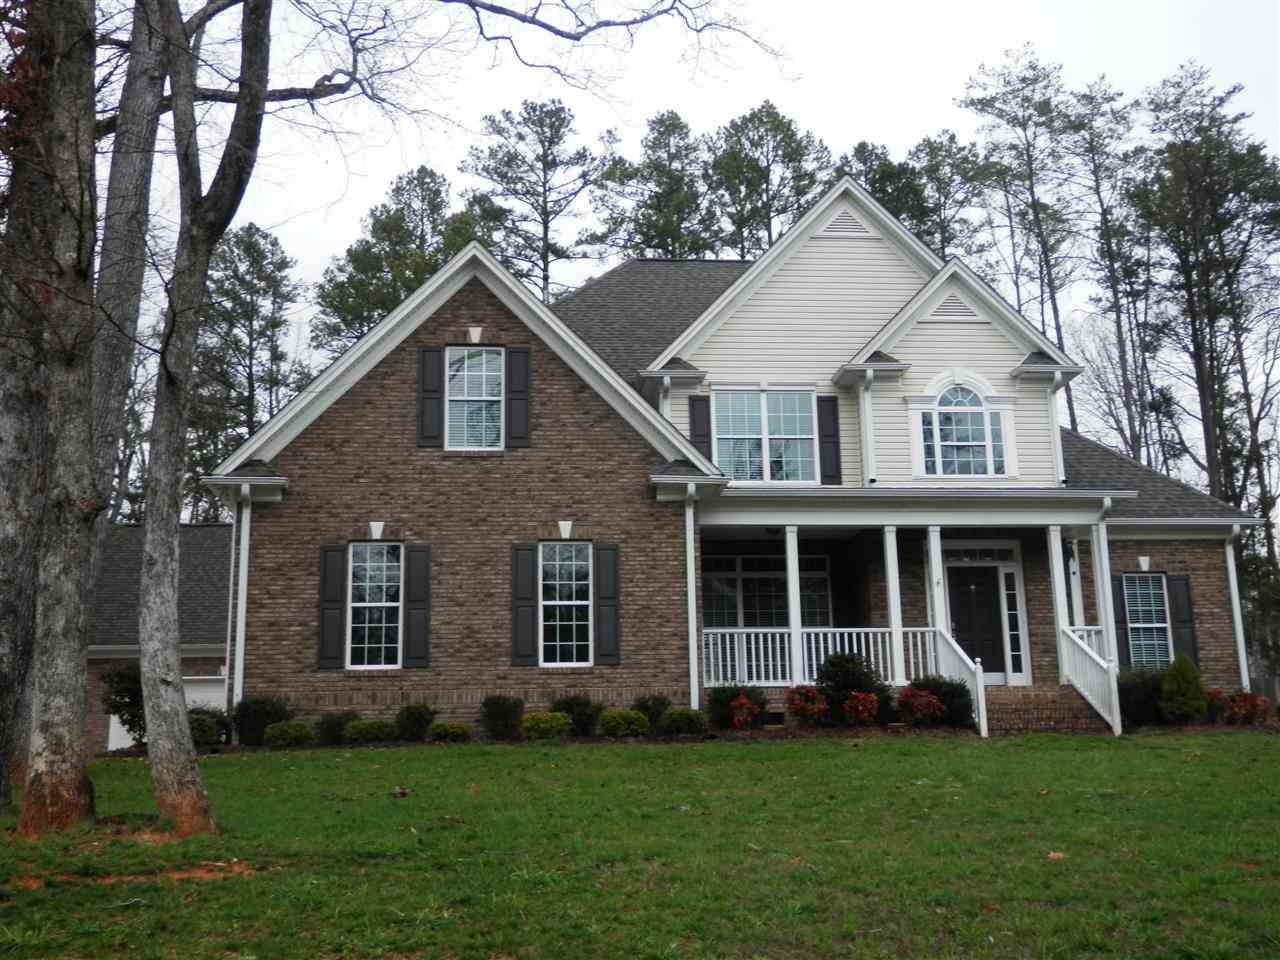 Real Estate for Sale, ListingId: 27387488, Rock Hill, SC  29732